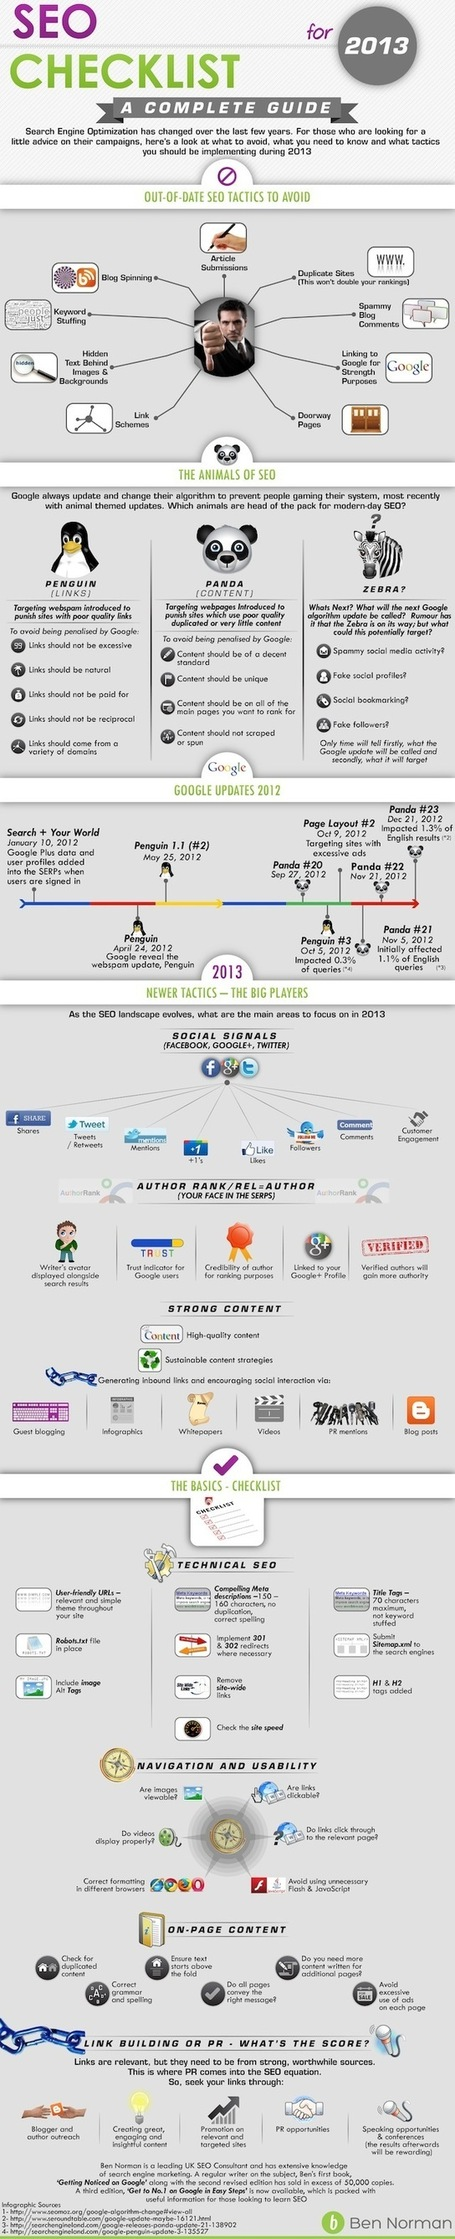 Infographie : le référencement en 2013, à faire et à éviter | Web 2.0 for juandoming | Scoop.it